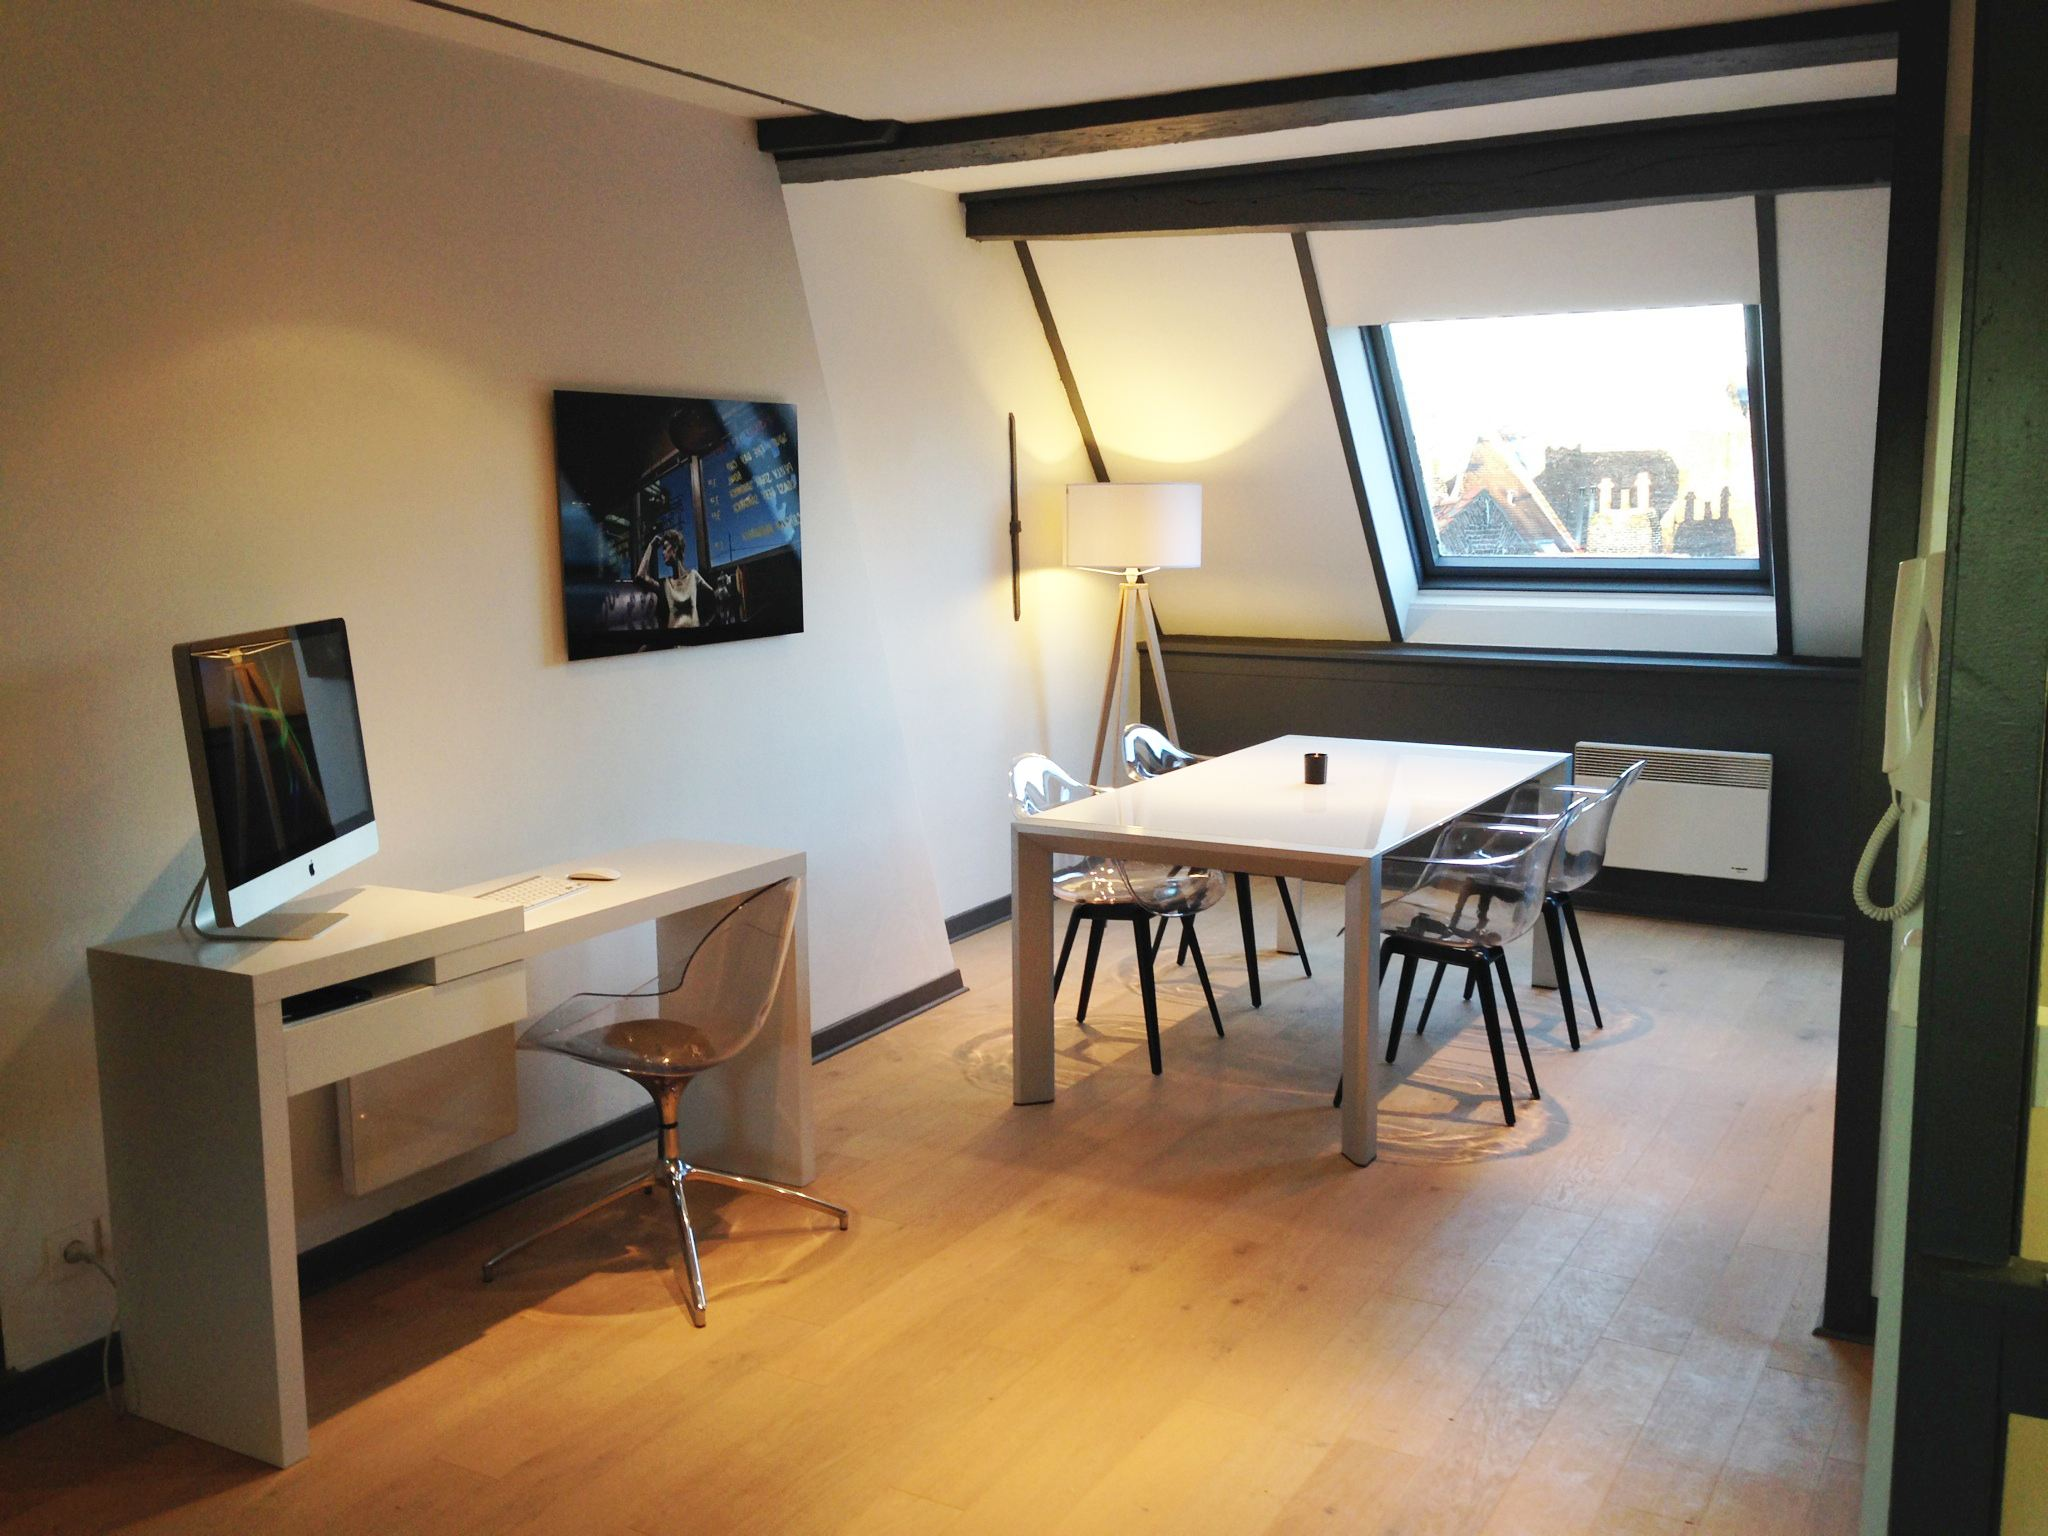 rentals property at VIEUX-LILLE, 100m from the Grand' Place, 65sqm furnished flat.